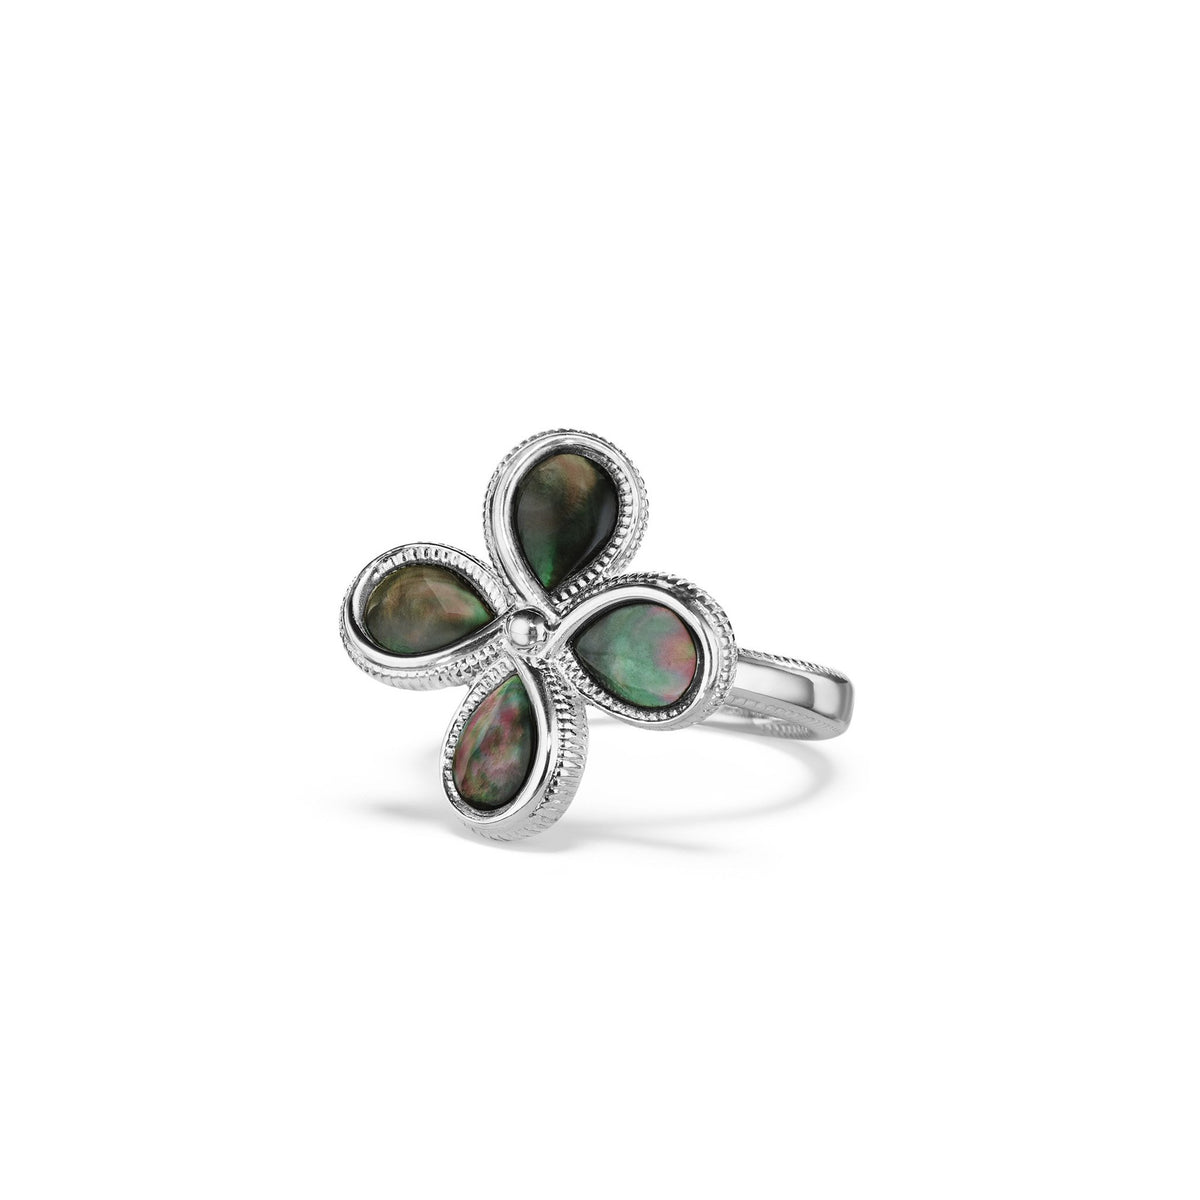 Jardin Flower Ring with Black Mother of Pearl